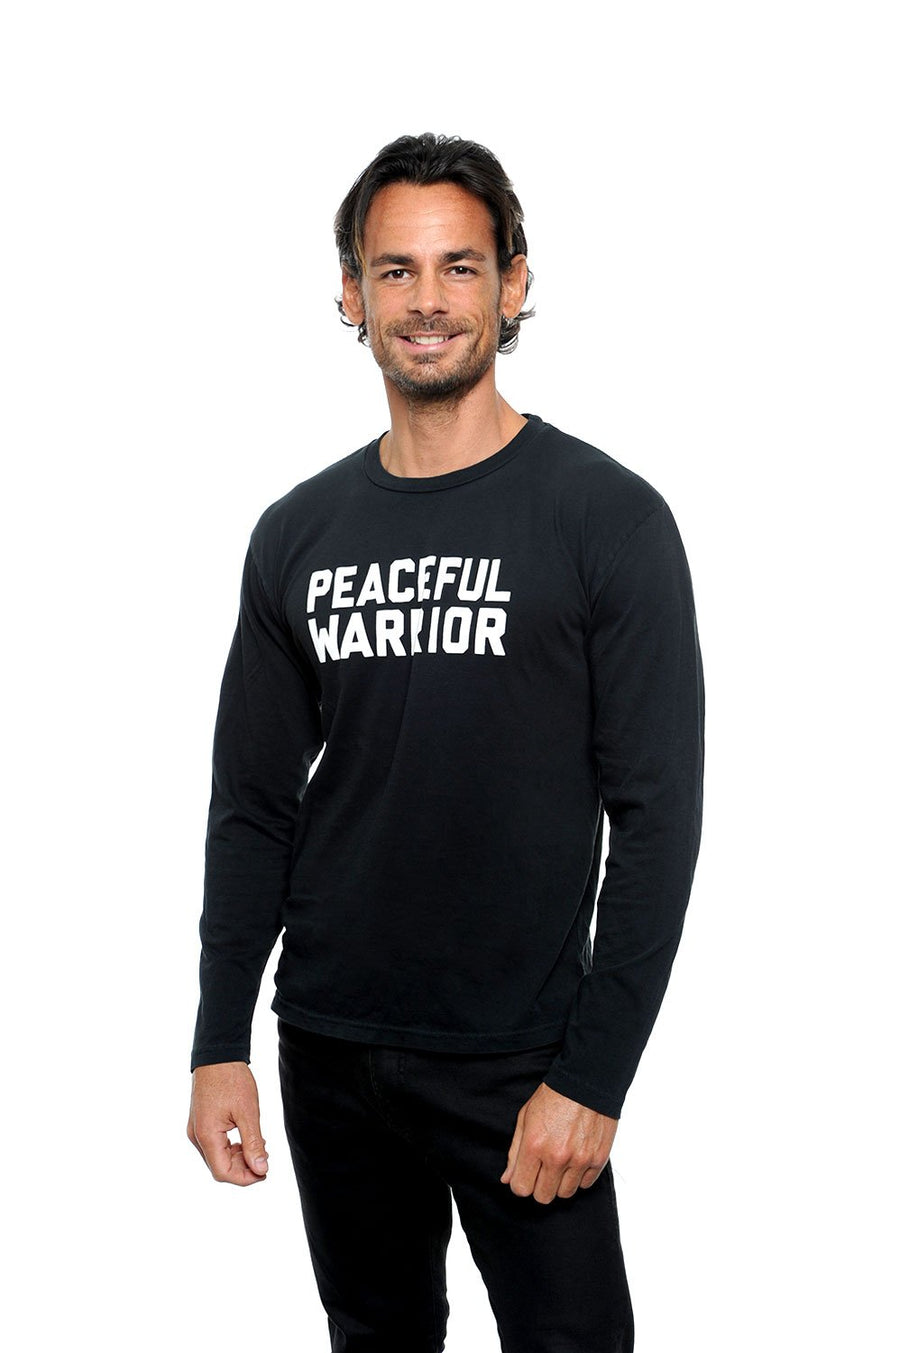 Peaceful Warrior Unisex Long Sleeve Tee